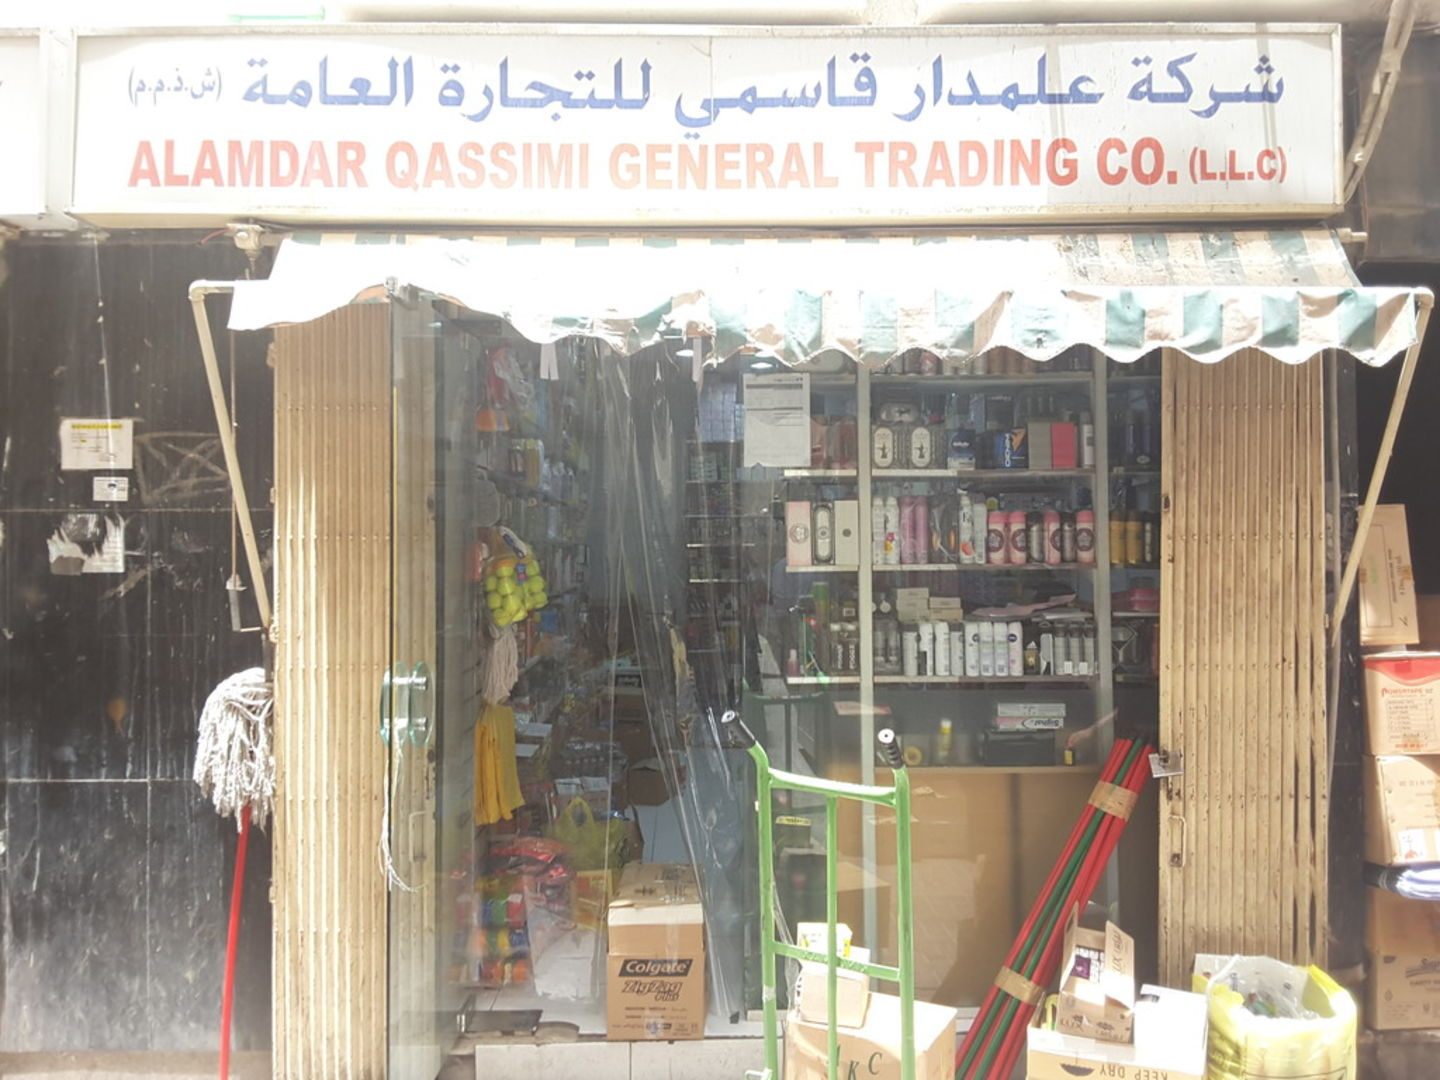 HiDubai-business-alamdar-qassimi-general-trading-b2b-services-distributors-wholesalers-al-daghaya-dubai-2